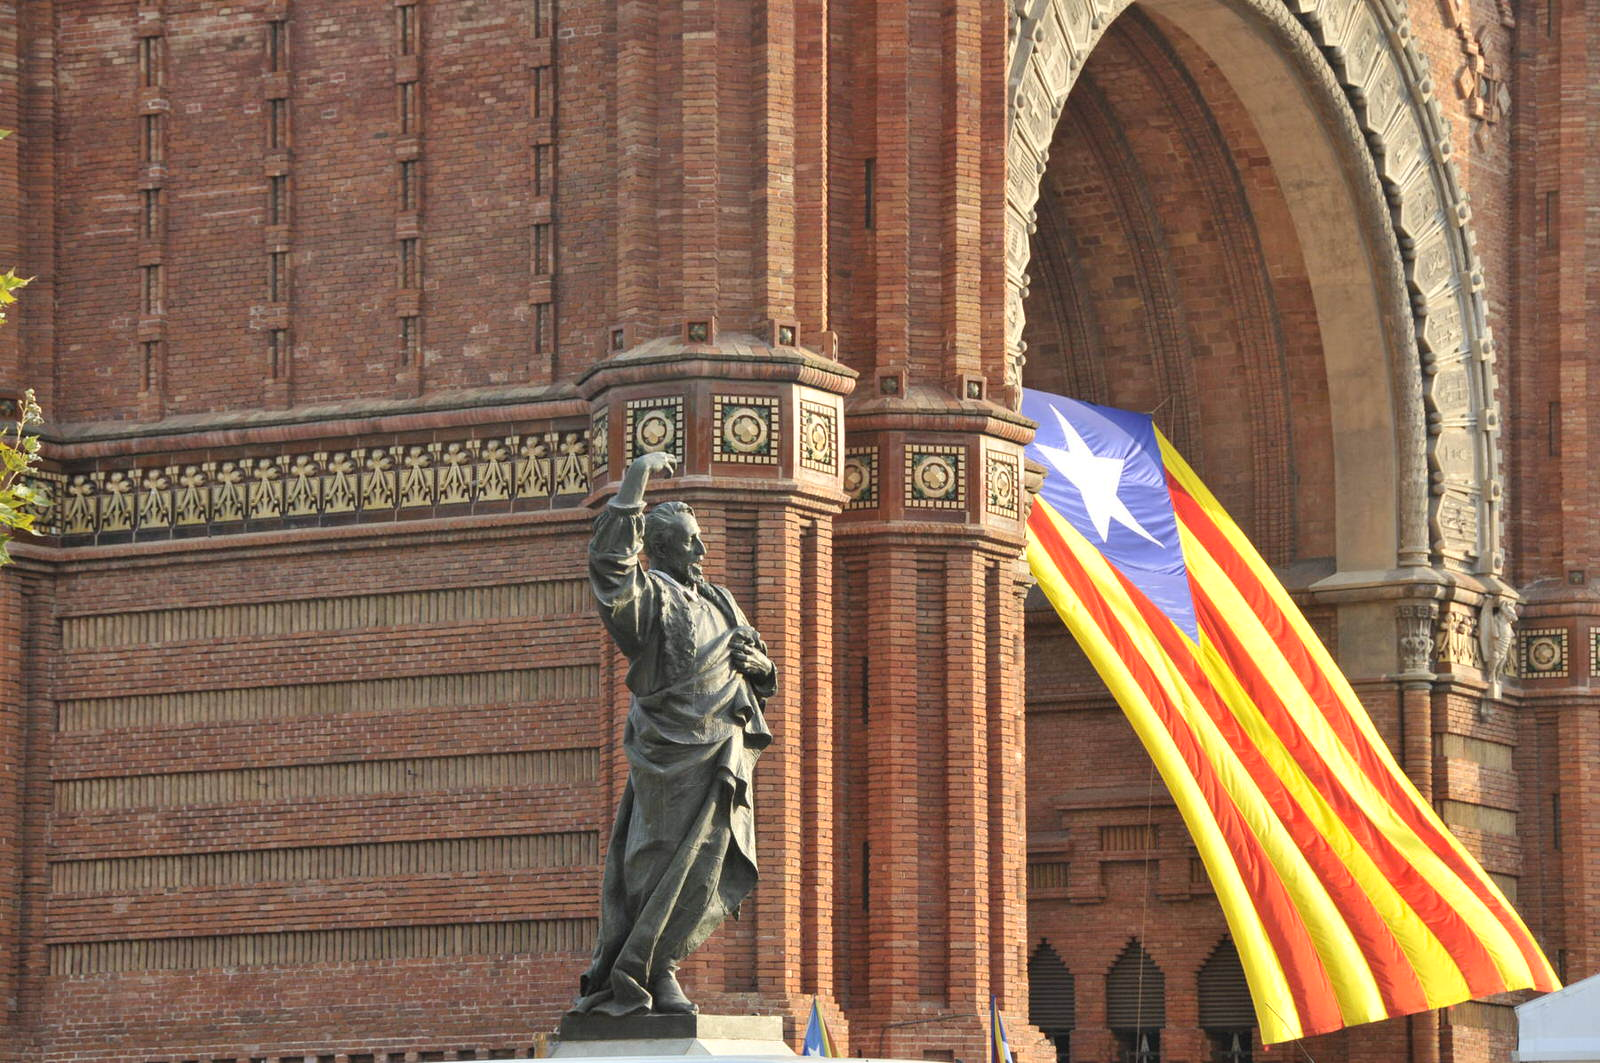 image from A New Farewell to Spain? Catalonia, the Spanish Crisis, and the Echoes of 1898